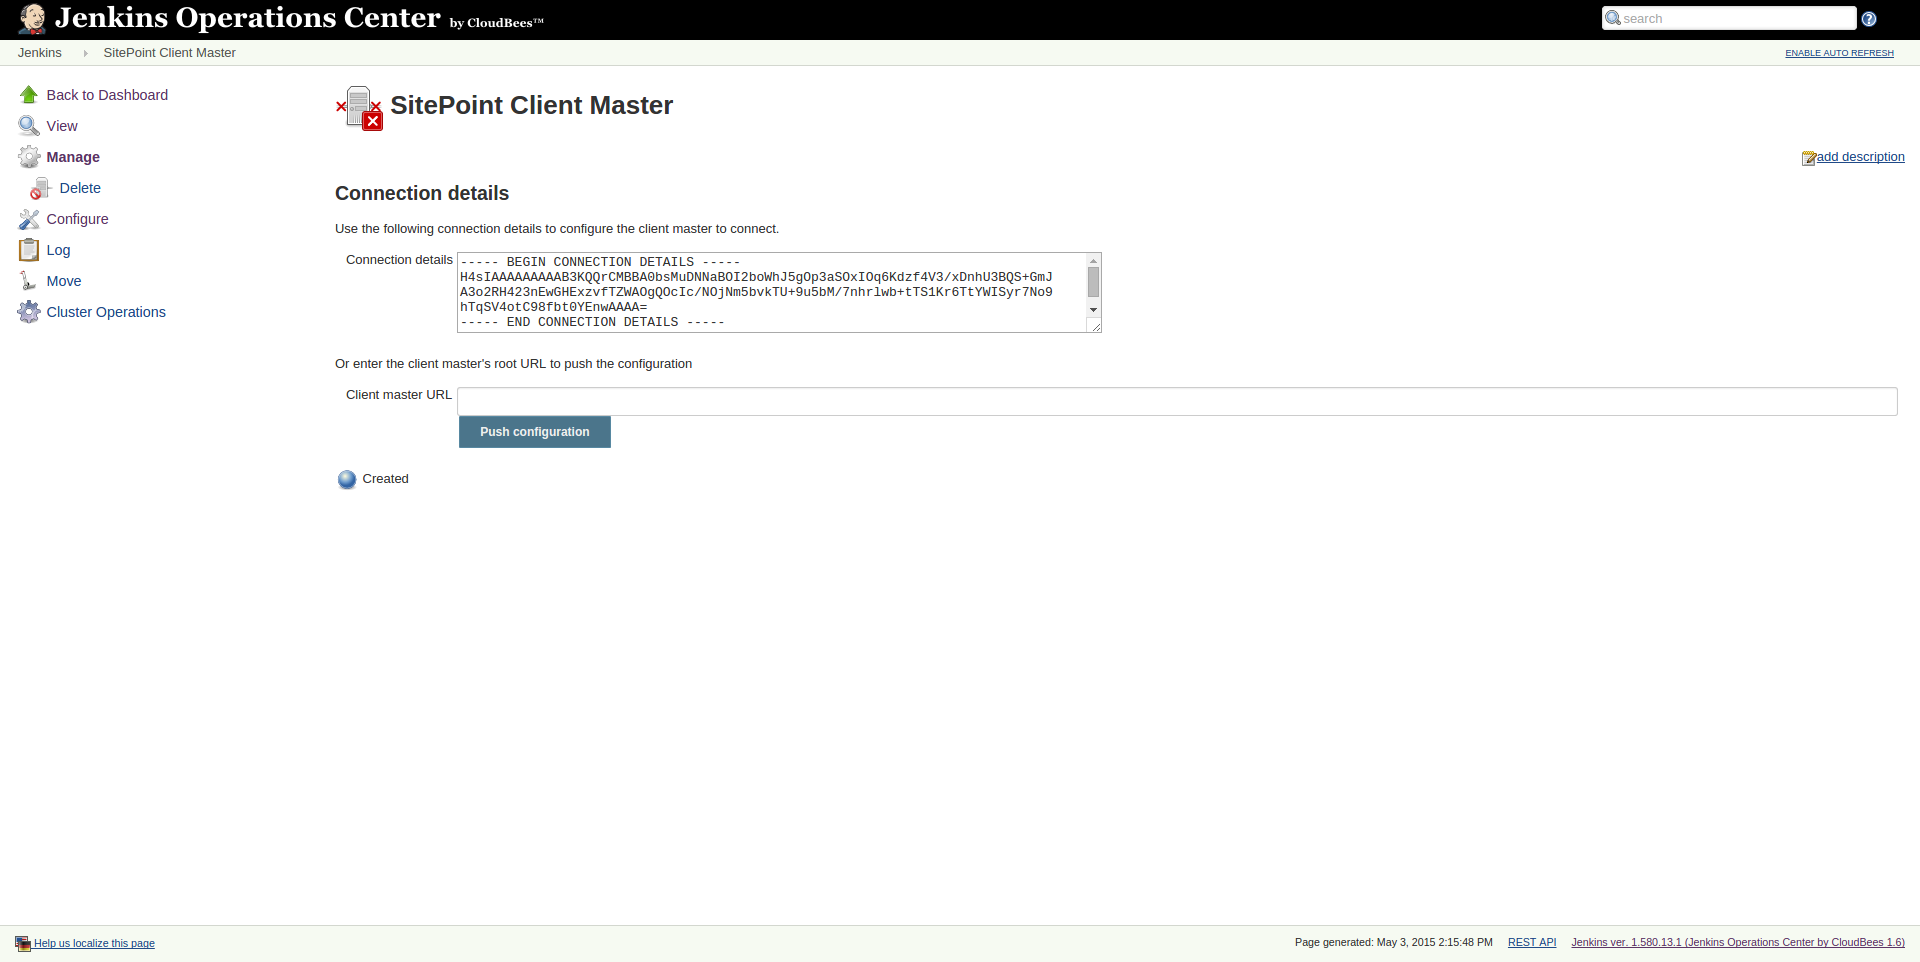 Connecting client master to CloudBees Jenkins Operation Center